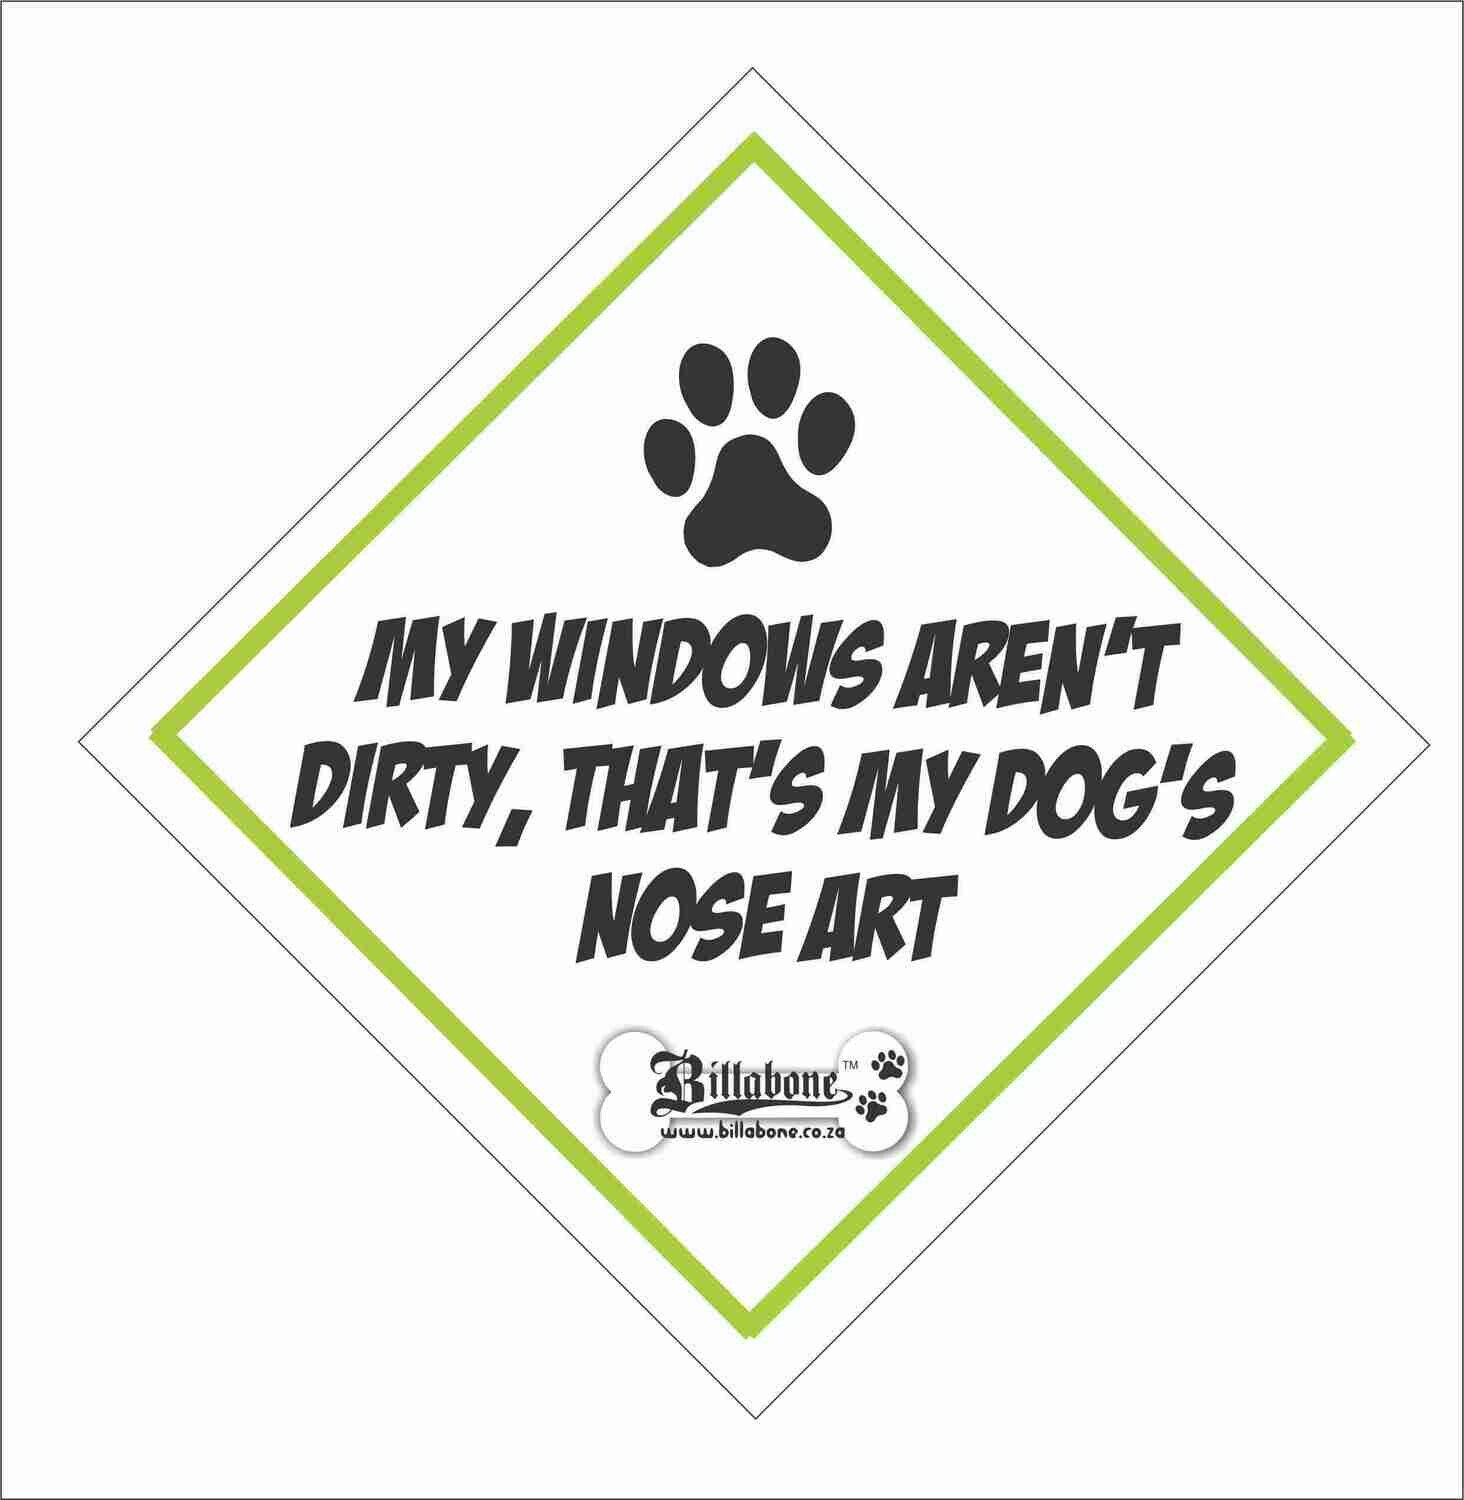 My Windows aren't dirty, that's my dog's nose art - Car Sign or Sticker